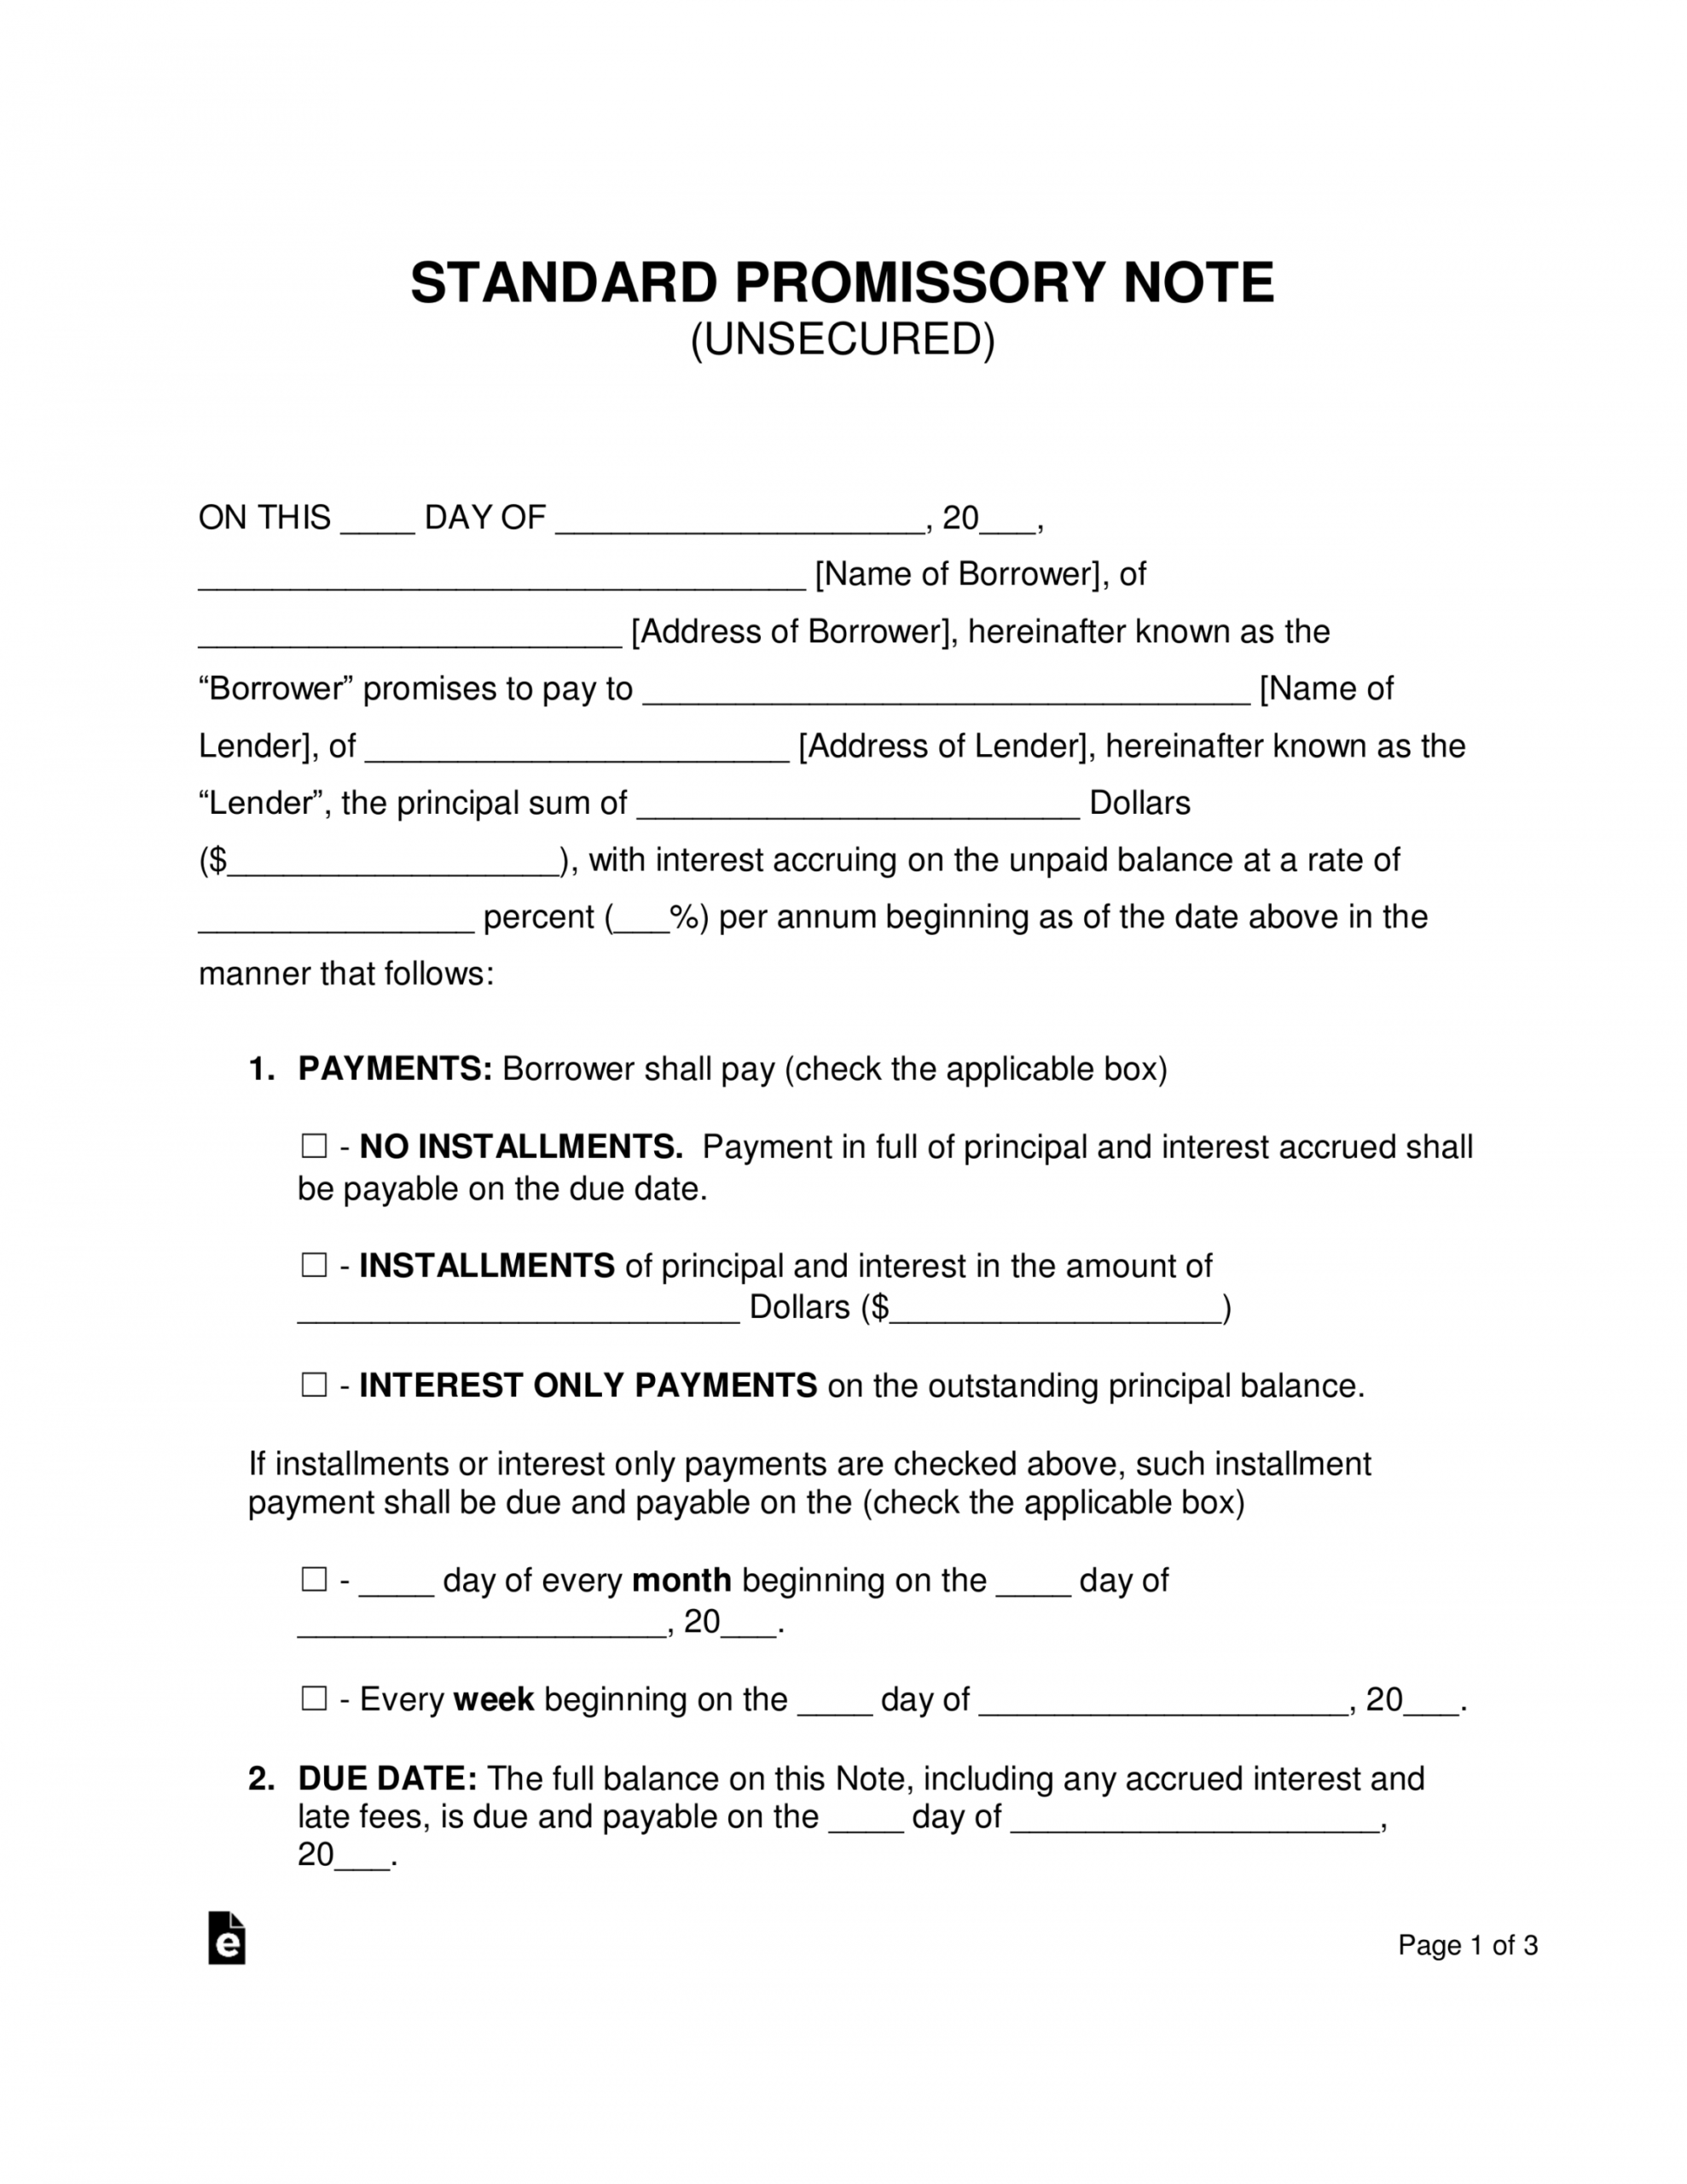 printable free unsecured promissory note template  word  pdf corporate promissory note template pdf